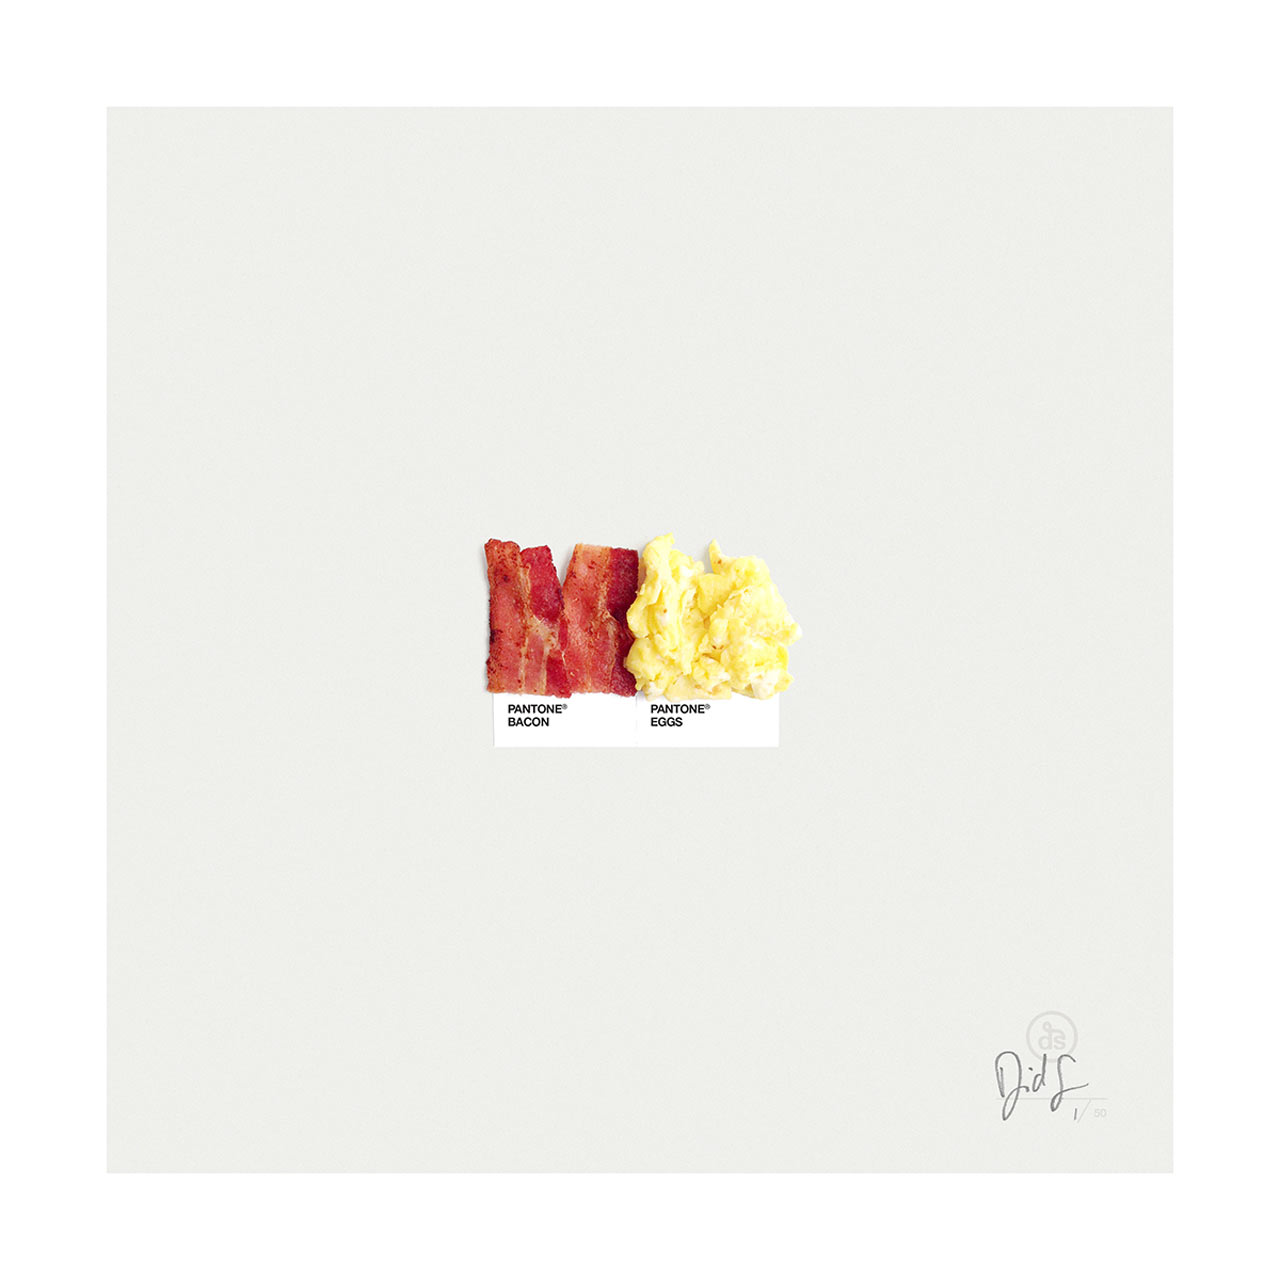 Pantone-Pairings-07_bacon_eggs